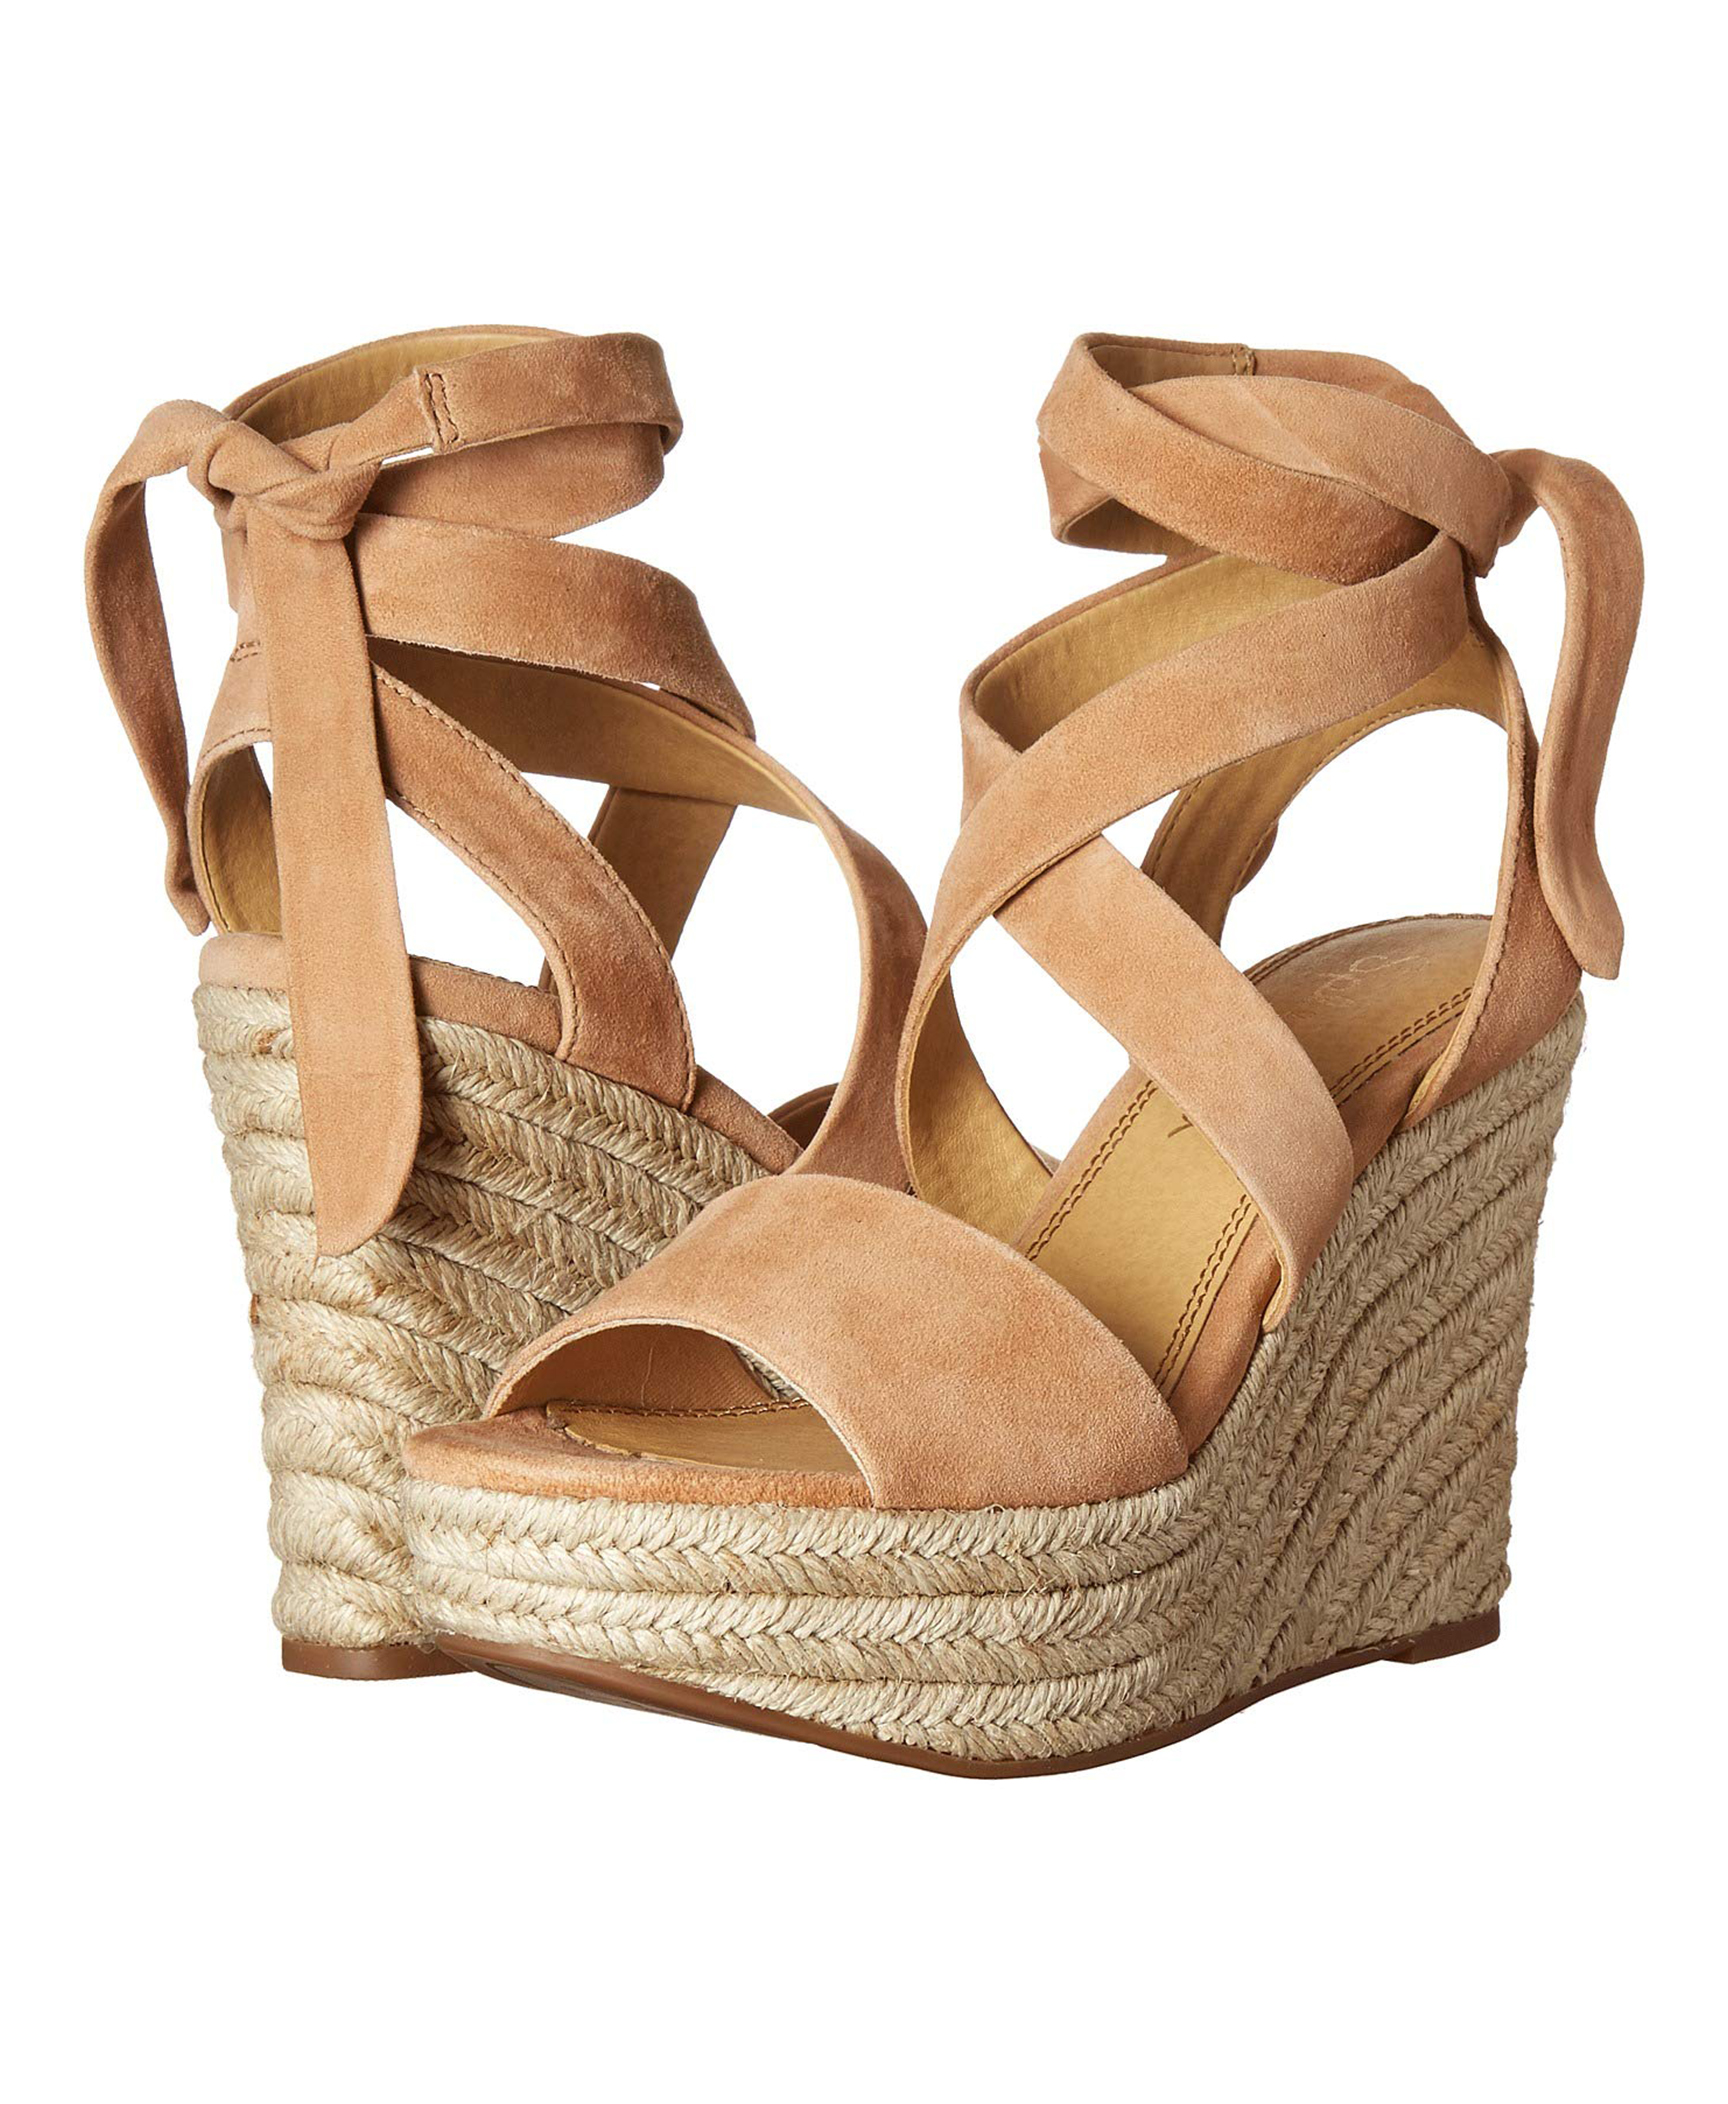 sandal wedges